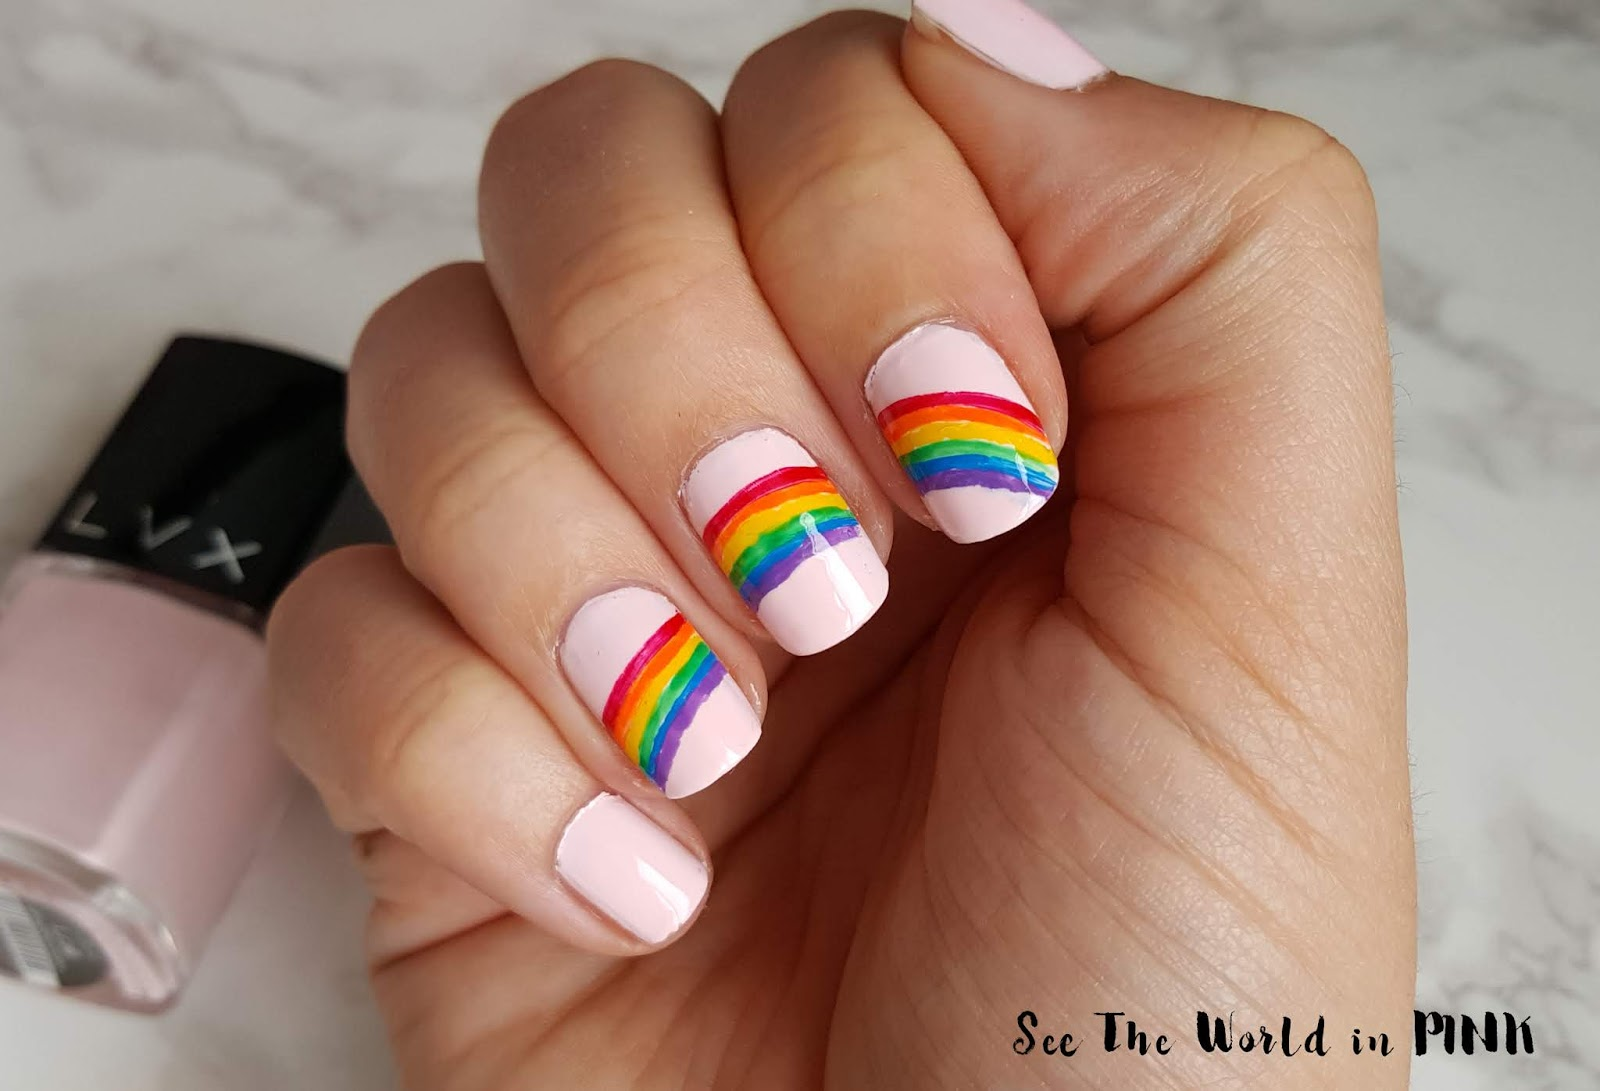 Manicure Monday - Rainbow Nails For Pride Month!